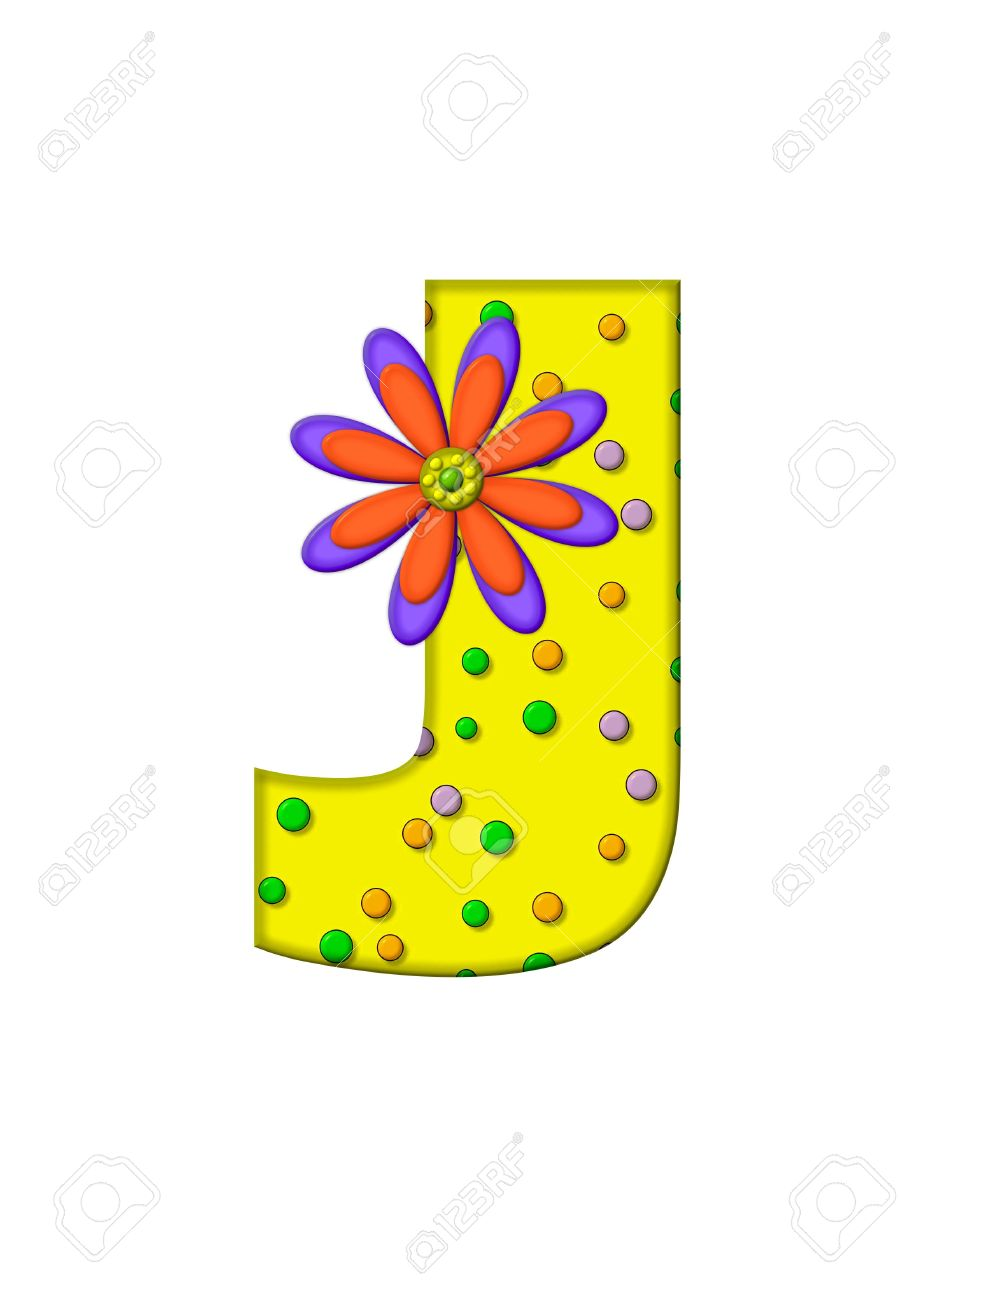 The Letter J In The Alphabet Set Zany Dots Is Yellow With